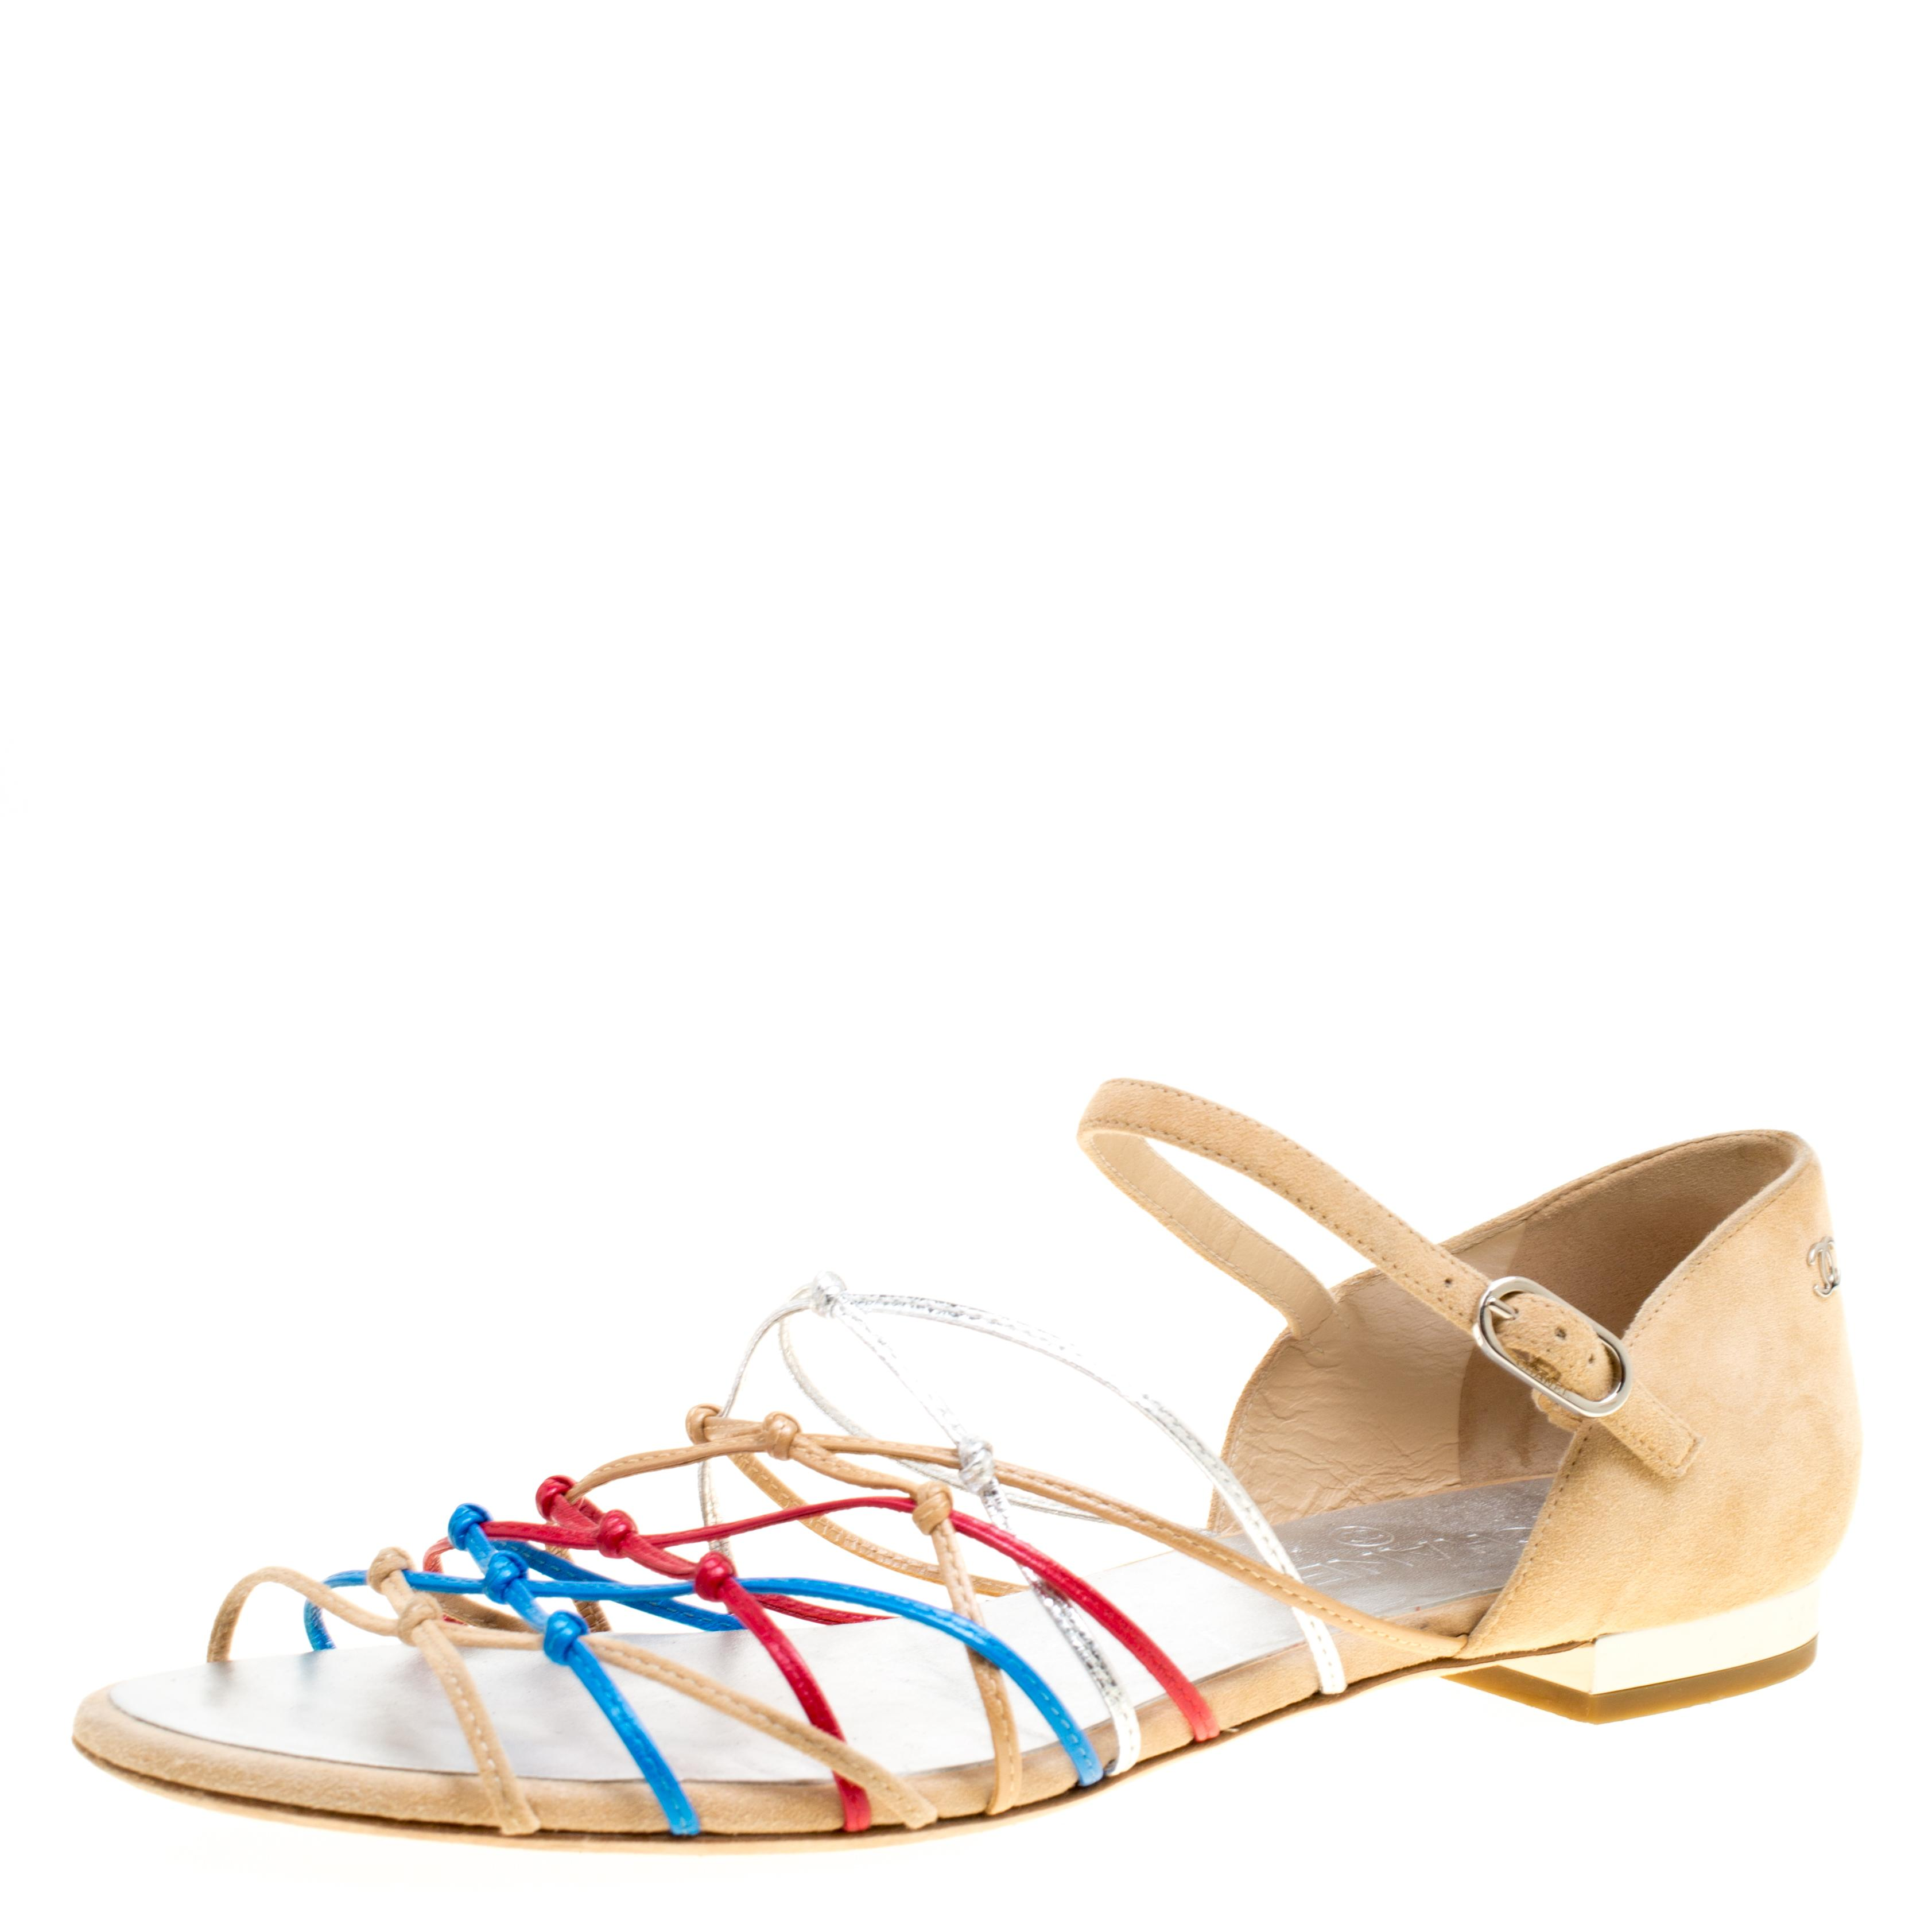 b05979130d23 Chanel. Women s Multicolor Leather And Suede Knot Detail Flat Sandals Size  41